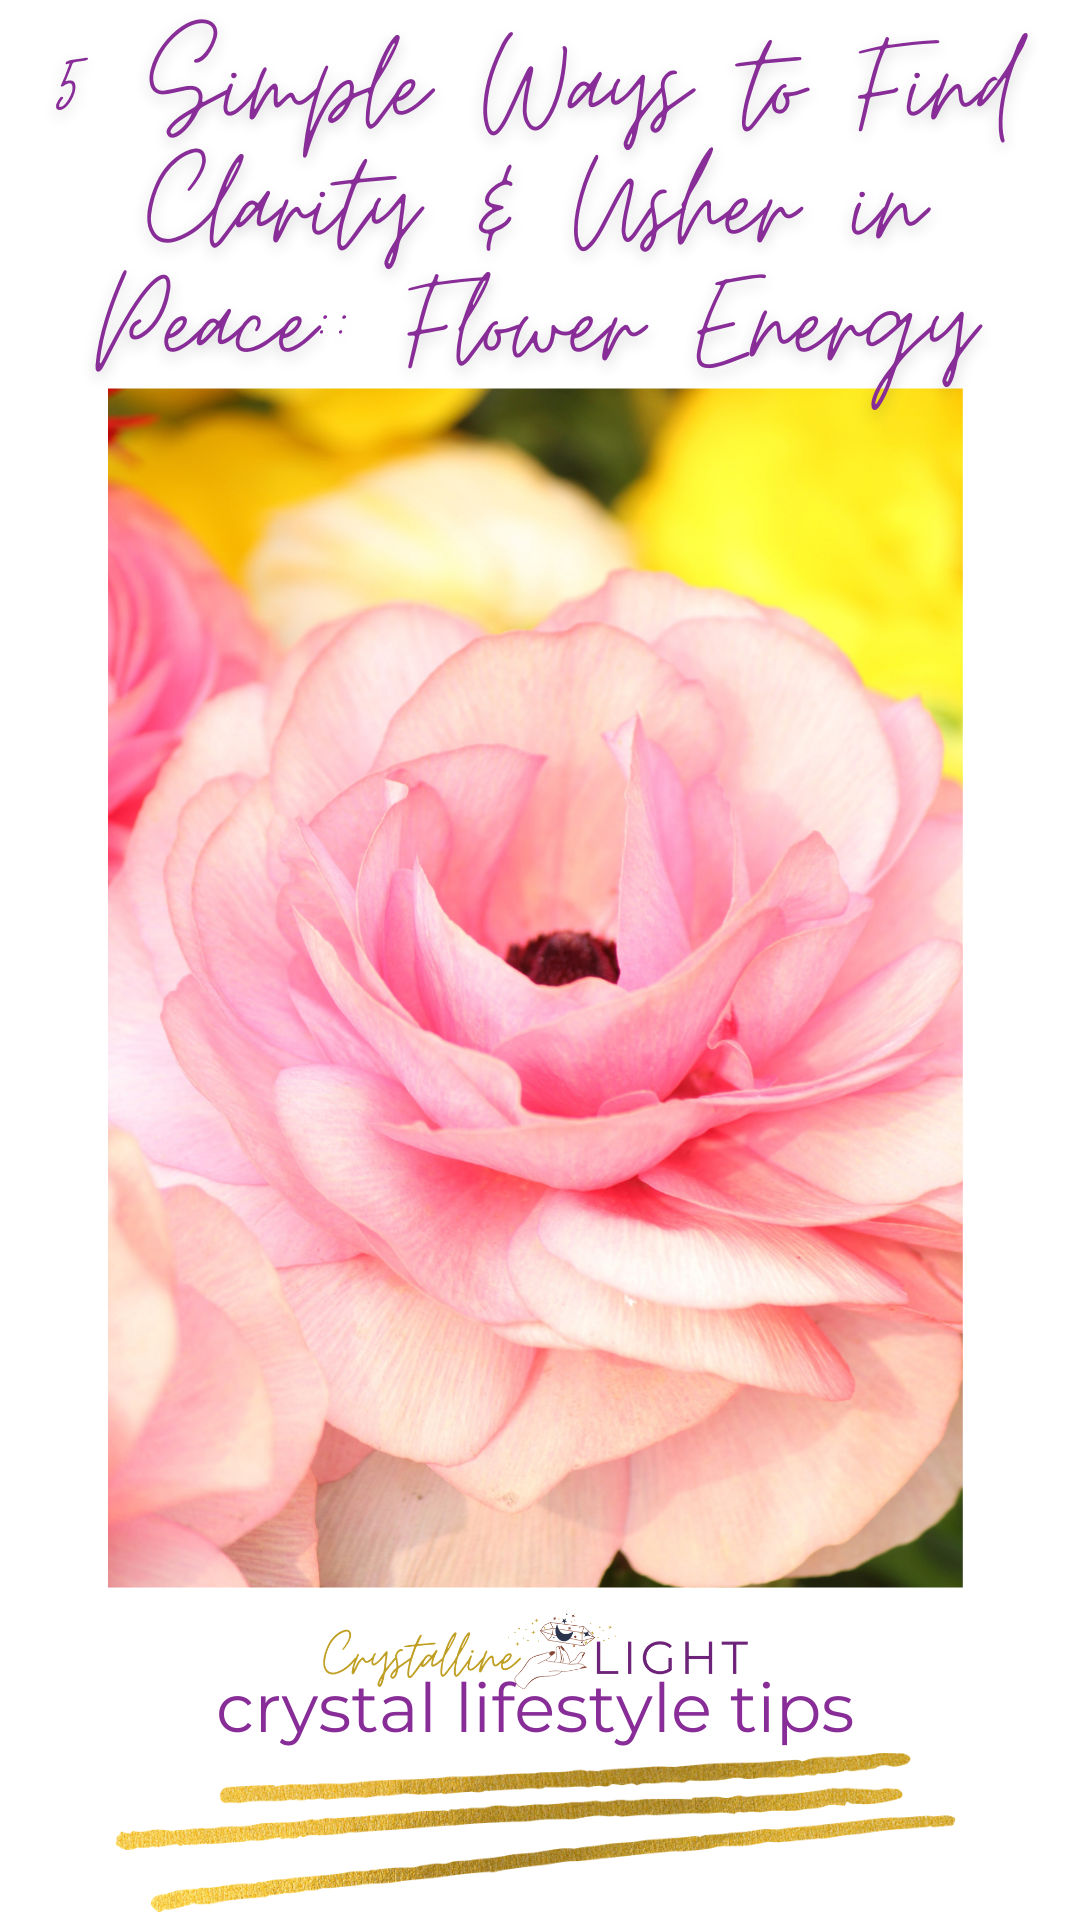 5 Simple Ways to Find Clarity & Usher In Peace: Flower Energy